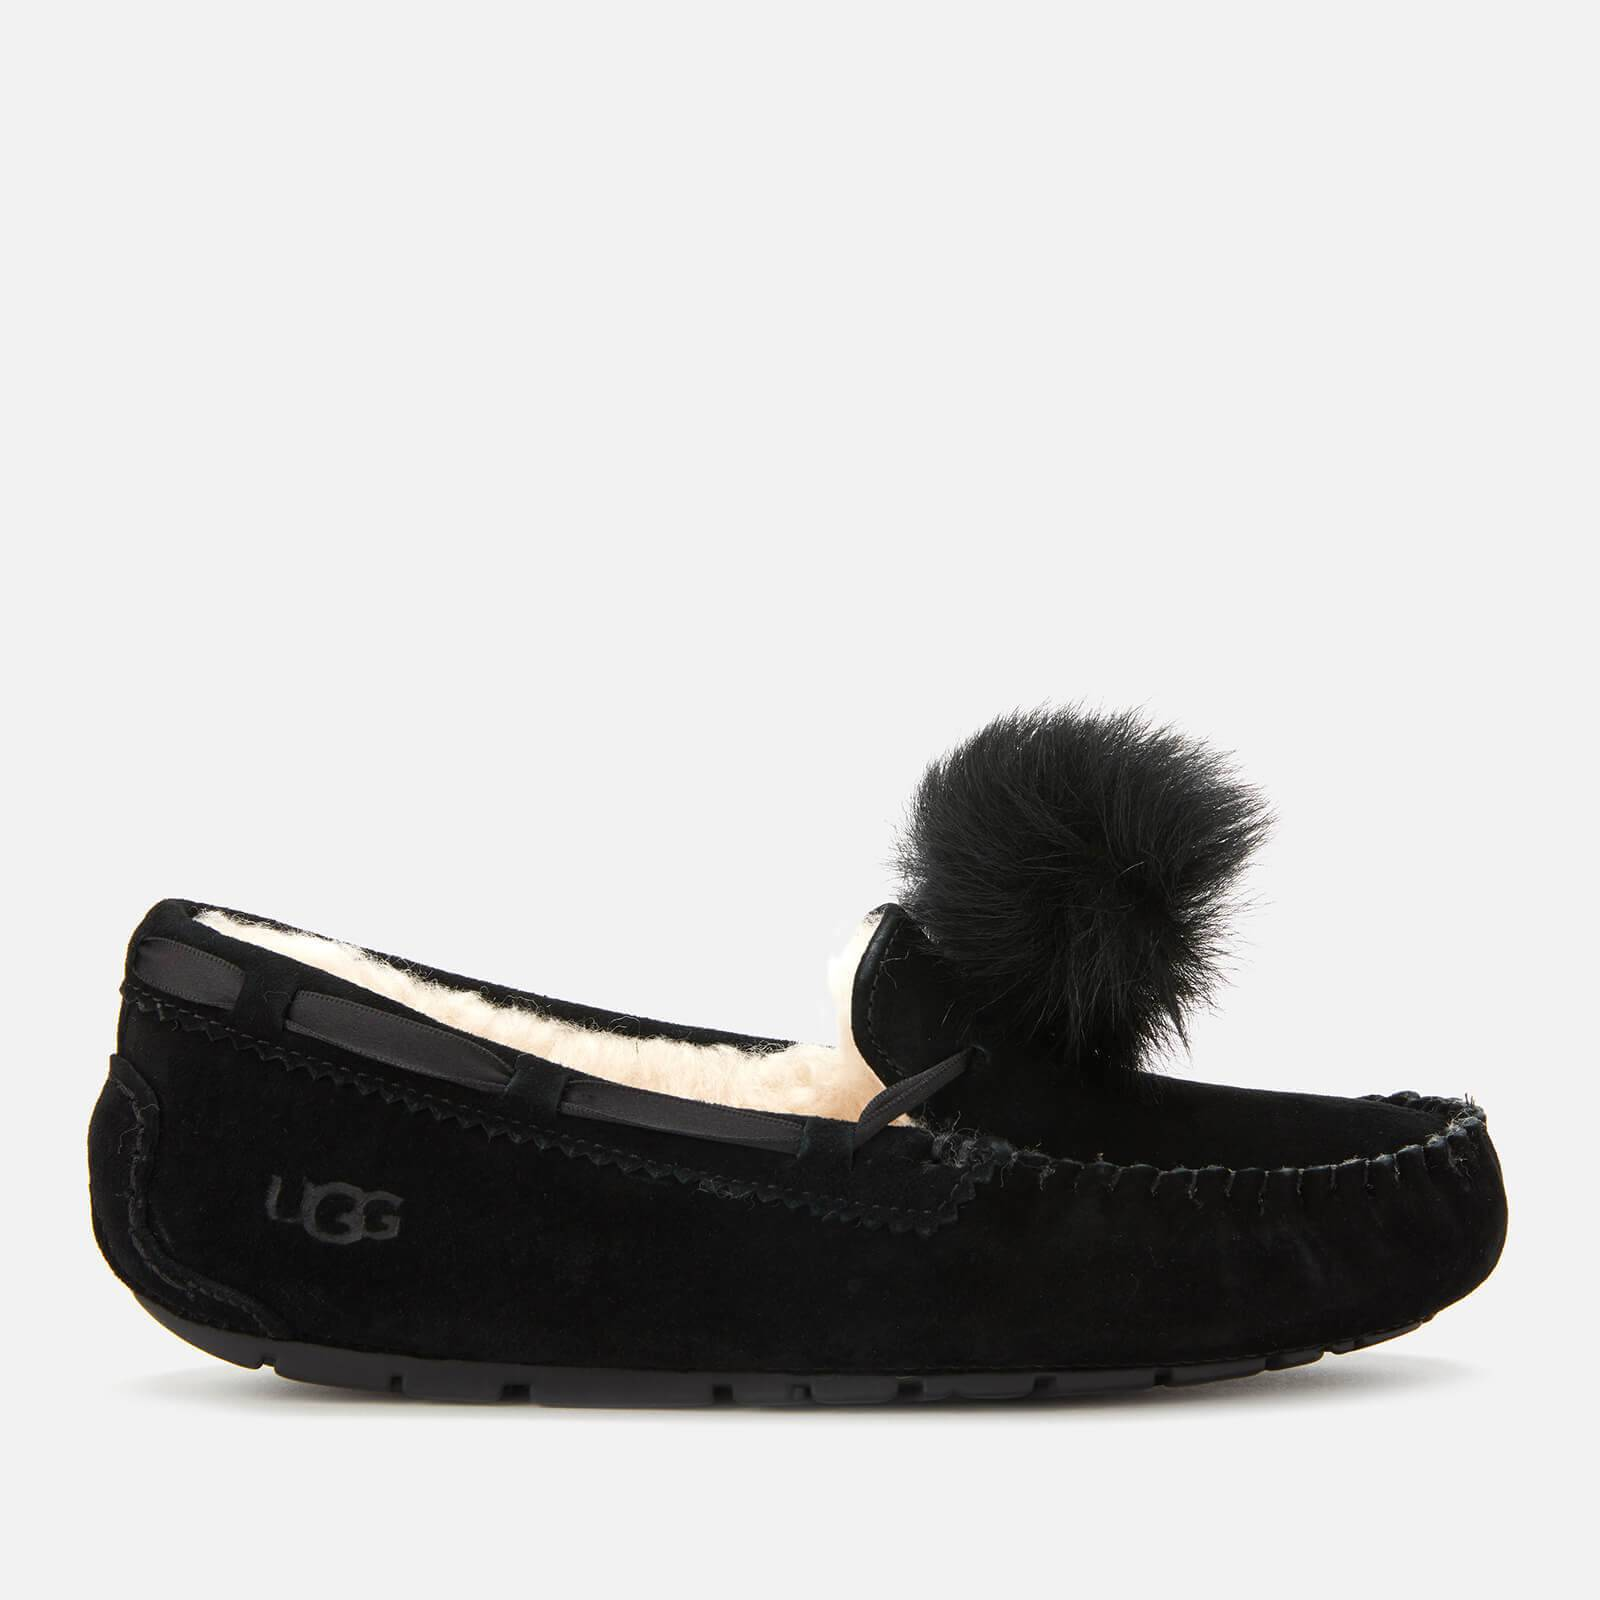 UGG Women's Dakota Pom Pom Moccasin Slippers - Black - UK 3